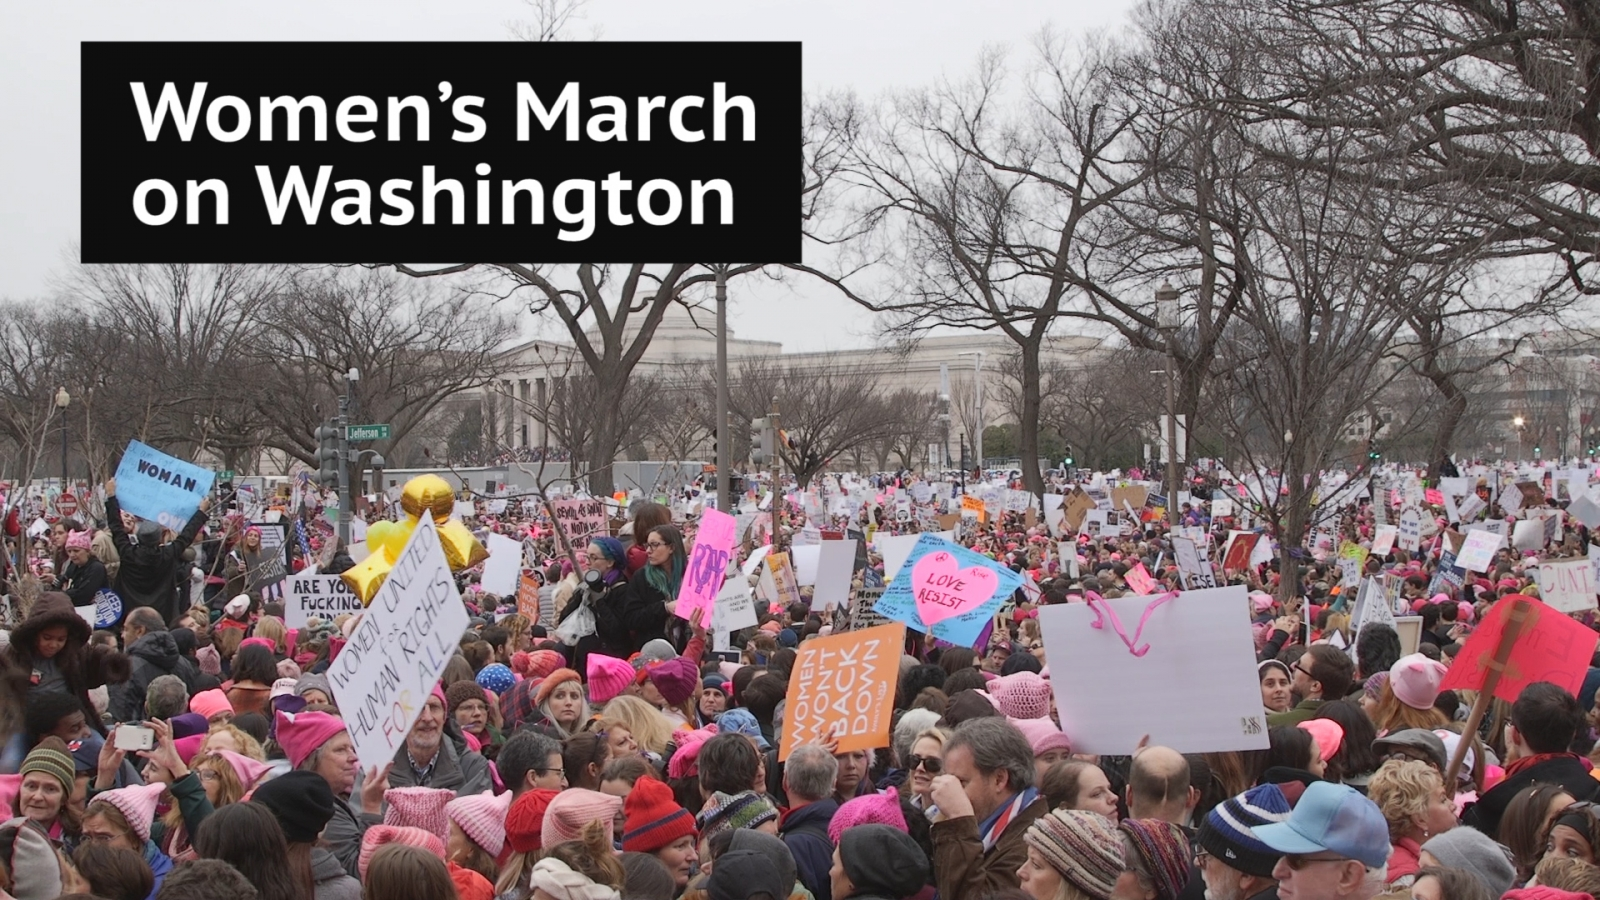 Hundreds of thousands march in Women's March on Washington